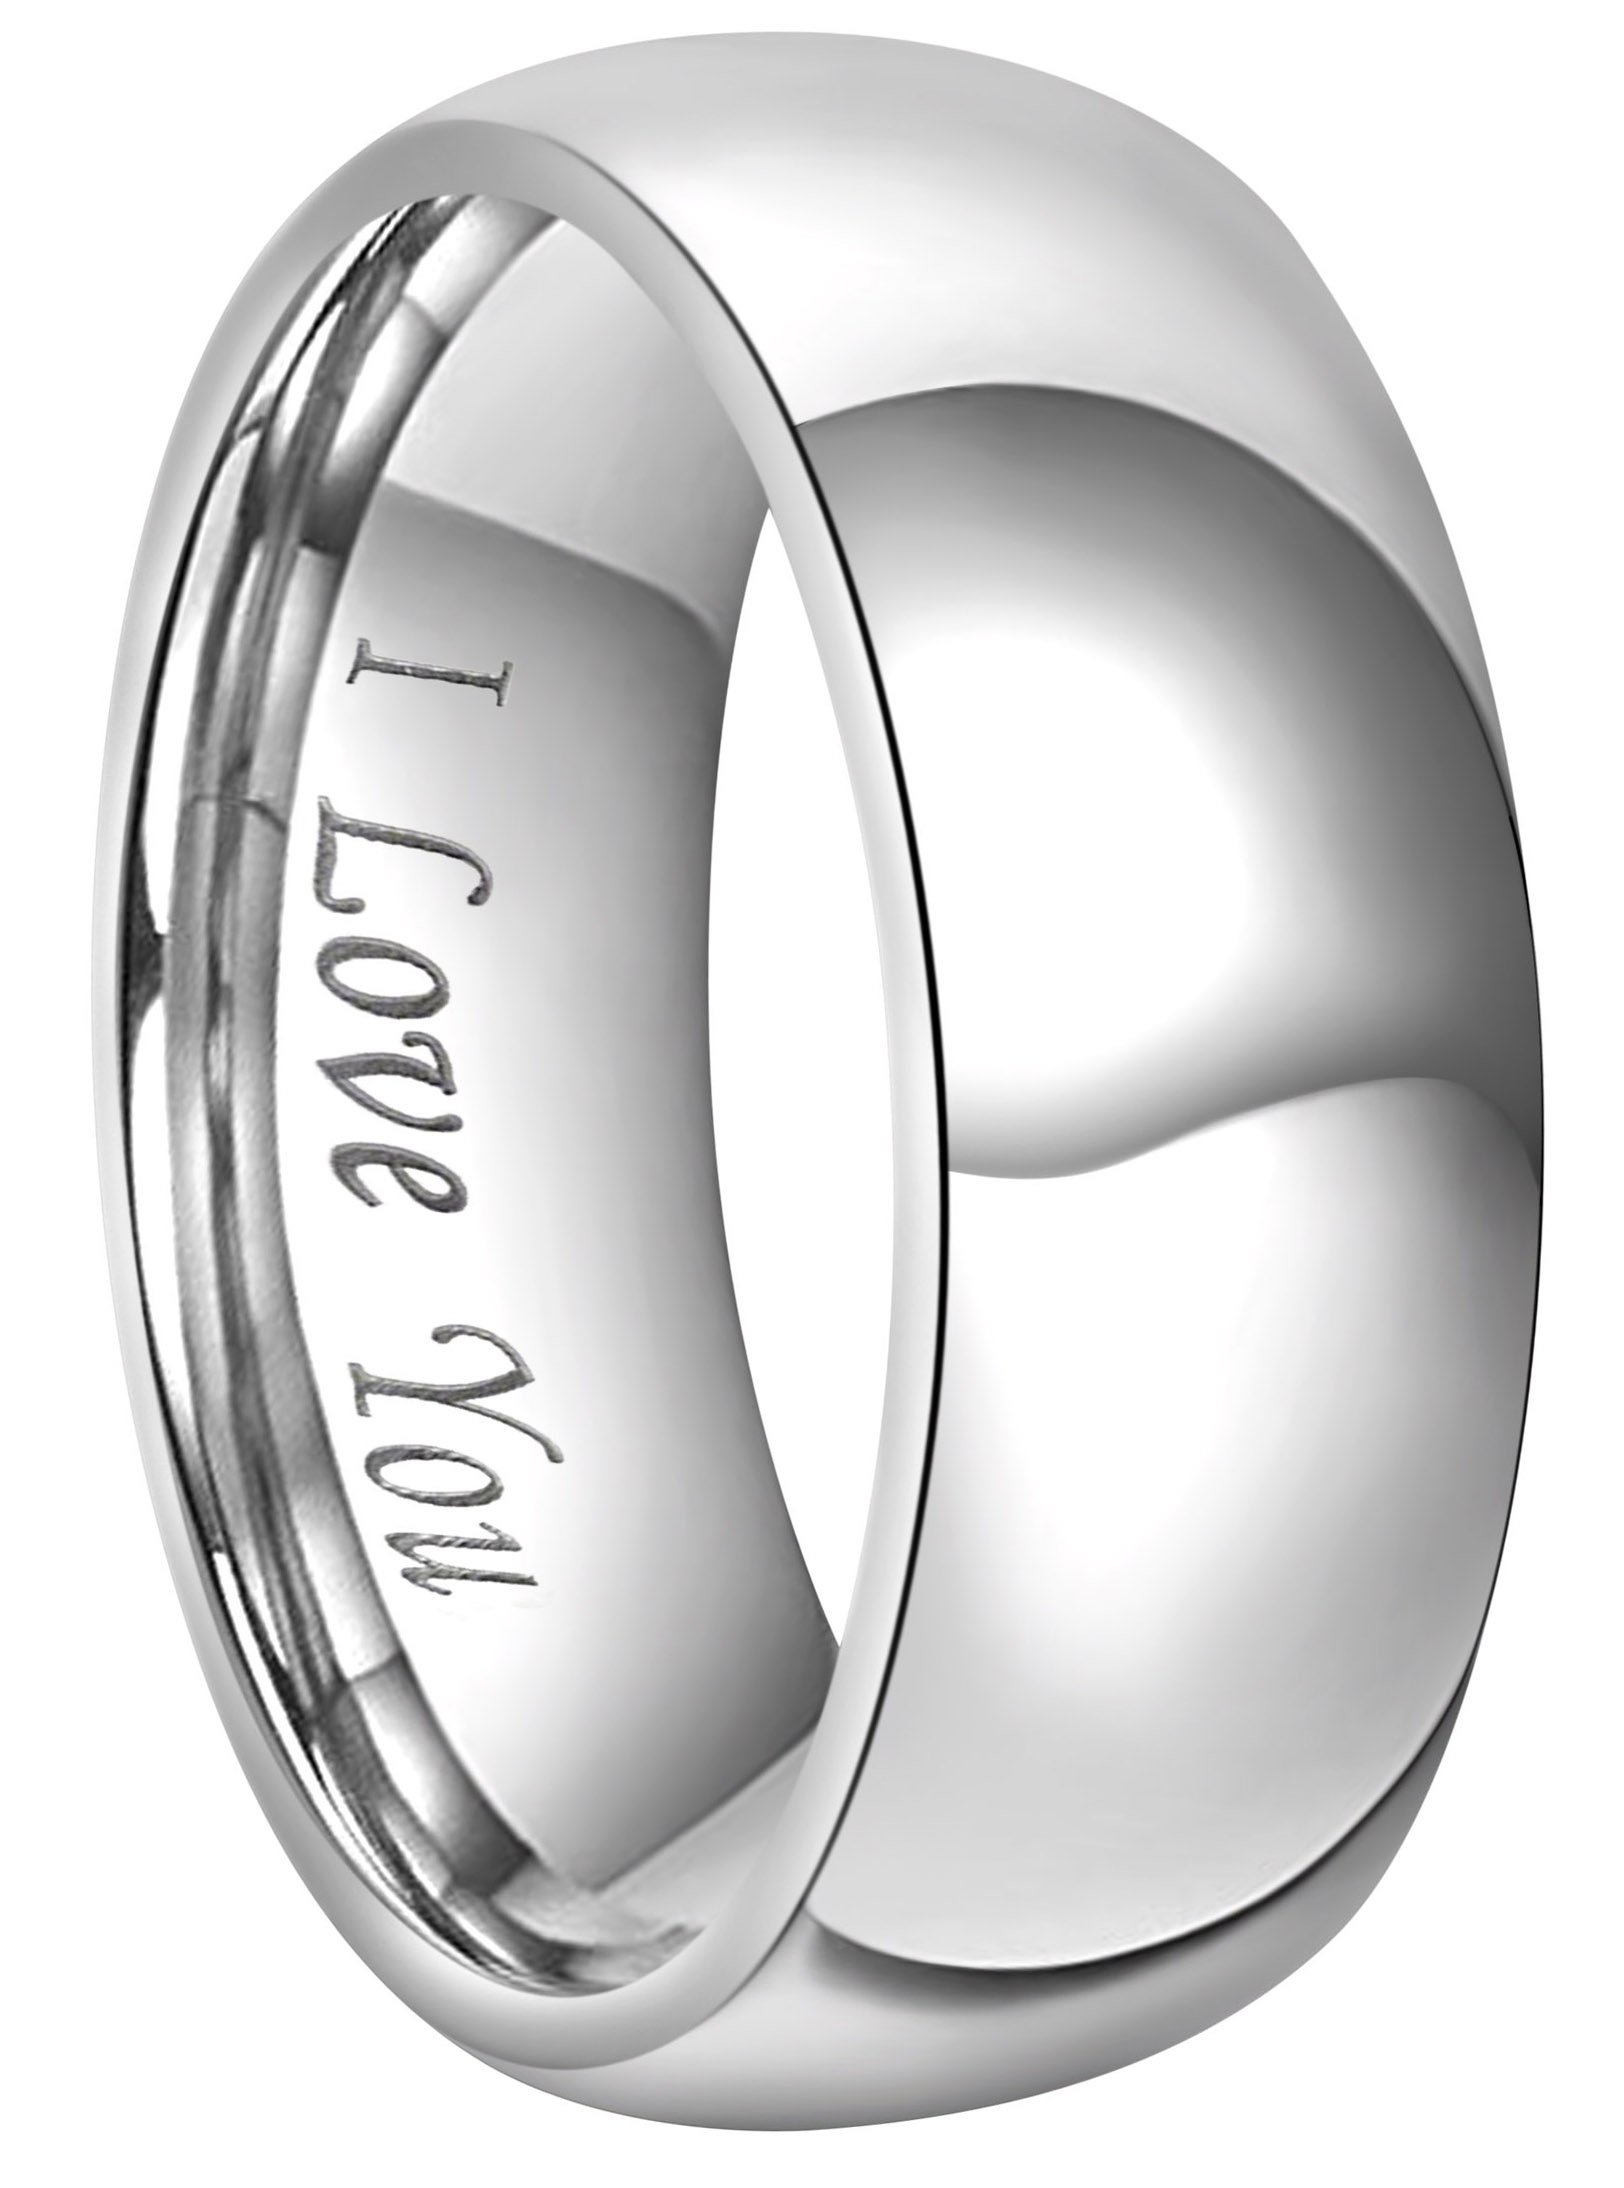 CROWNAL 4mm 6mm 8mm Titanium Couple Wedding Bands Rings Men Women Dome Polished Engraved I Love You Comfort Fit Size 4 To 16 (8mm,9)